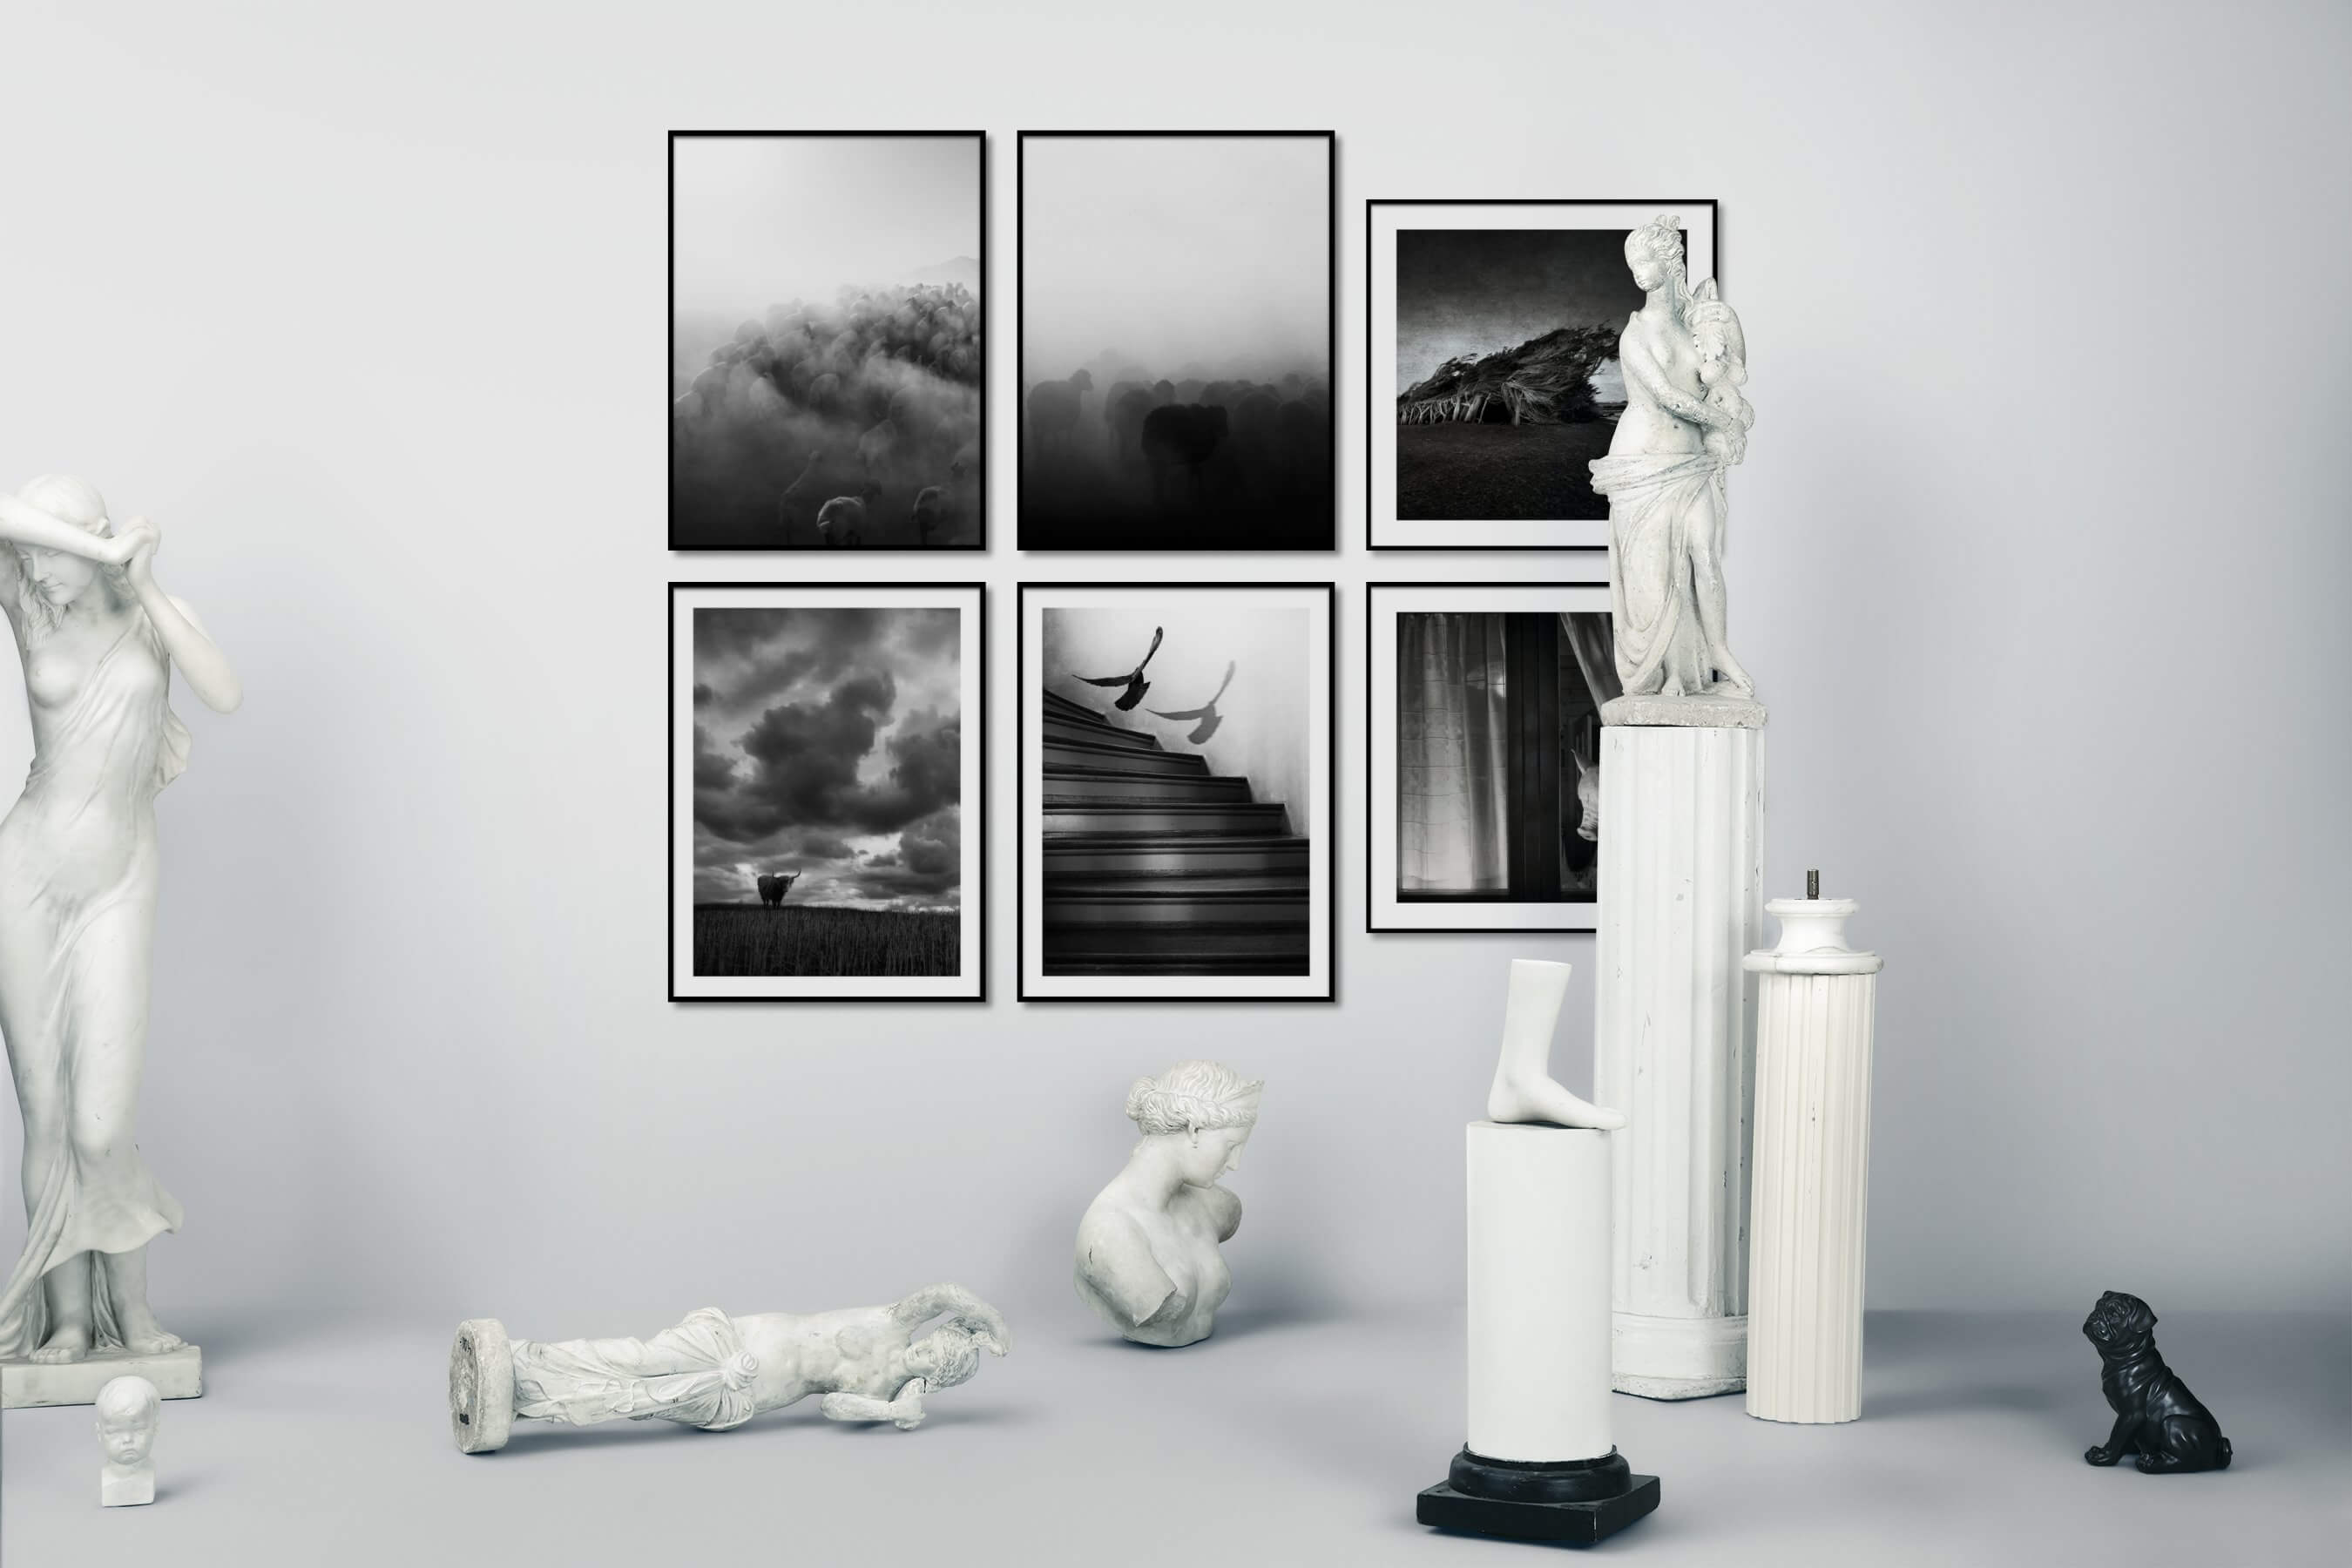 Gallery wall idea with six framed pictures arranged on a wall depicting Black & White, Animals, Country Life, For the Minimalist, For the Moderate, Nature, and Artsy